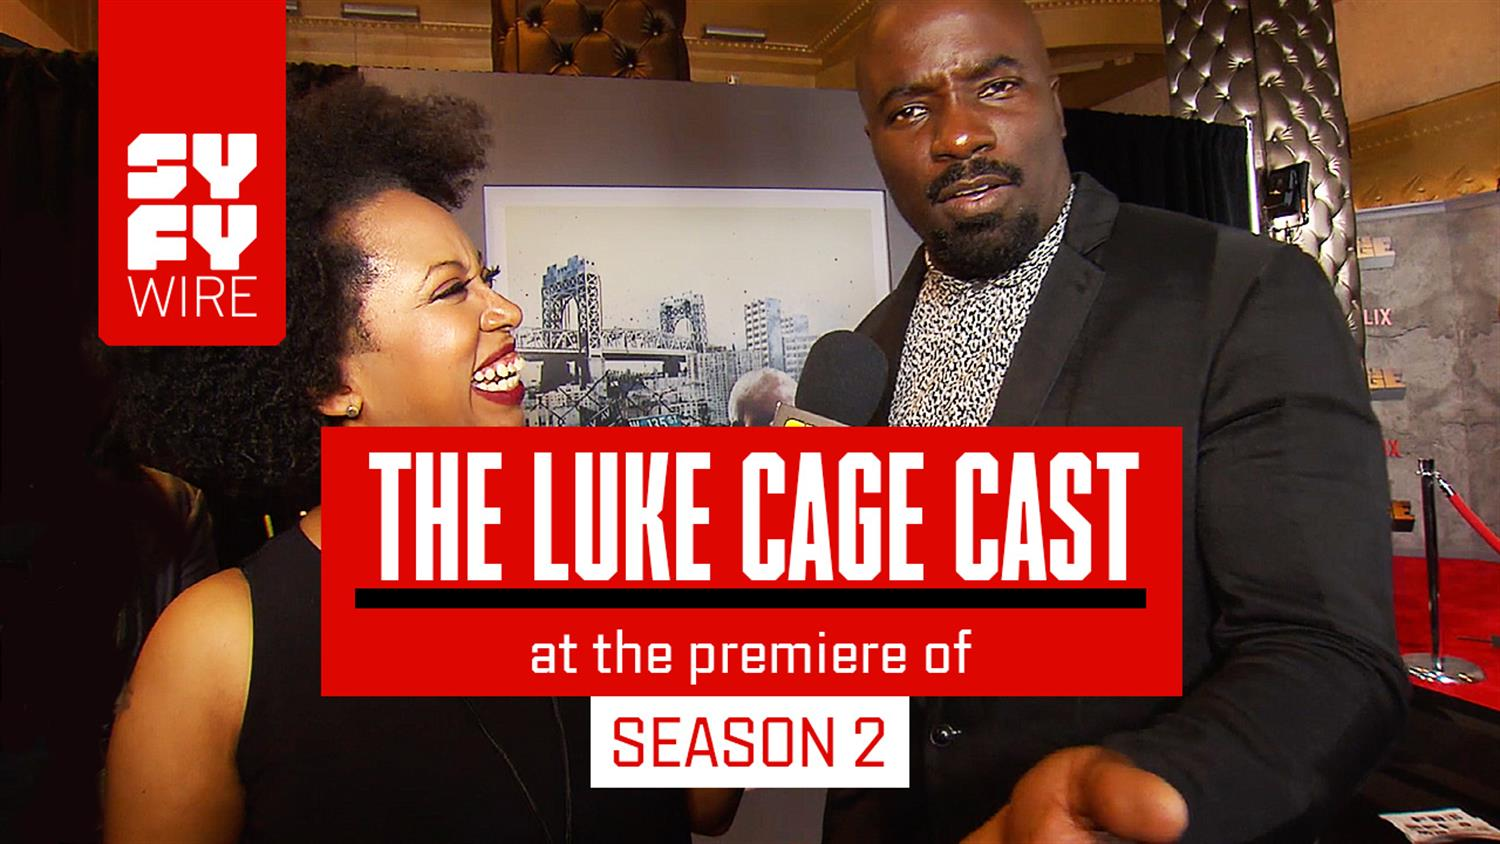 Luke Cage Red Carpet: Mike Colter and Cast Spill Season 2